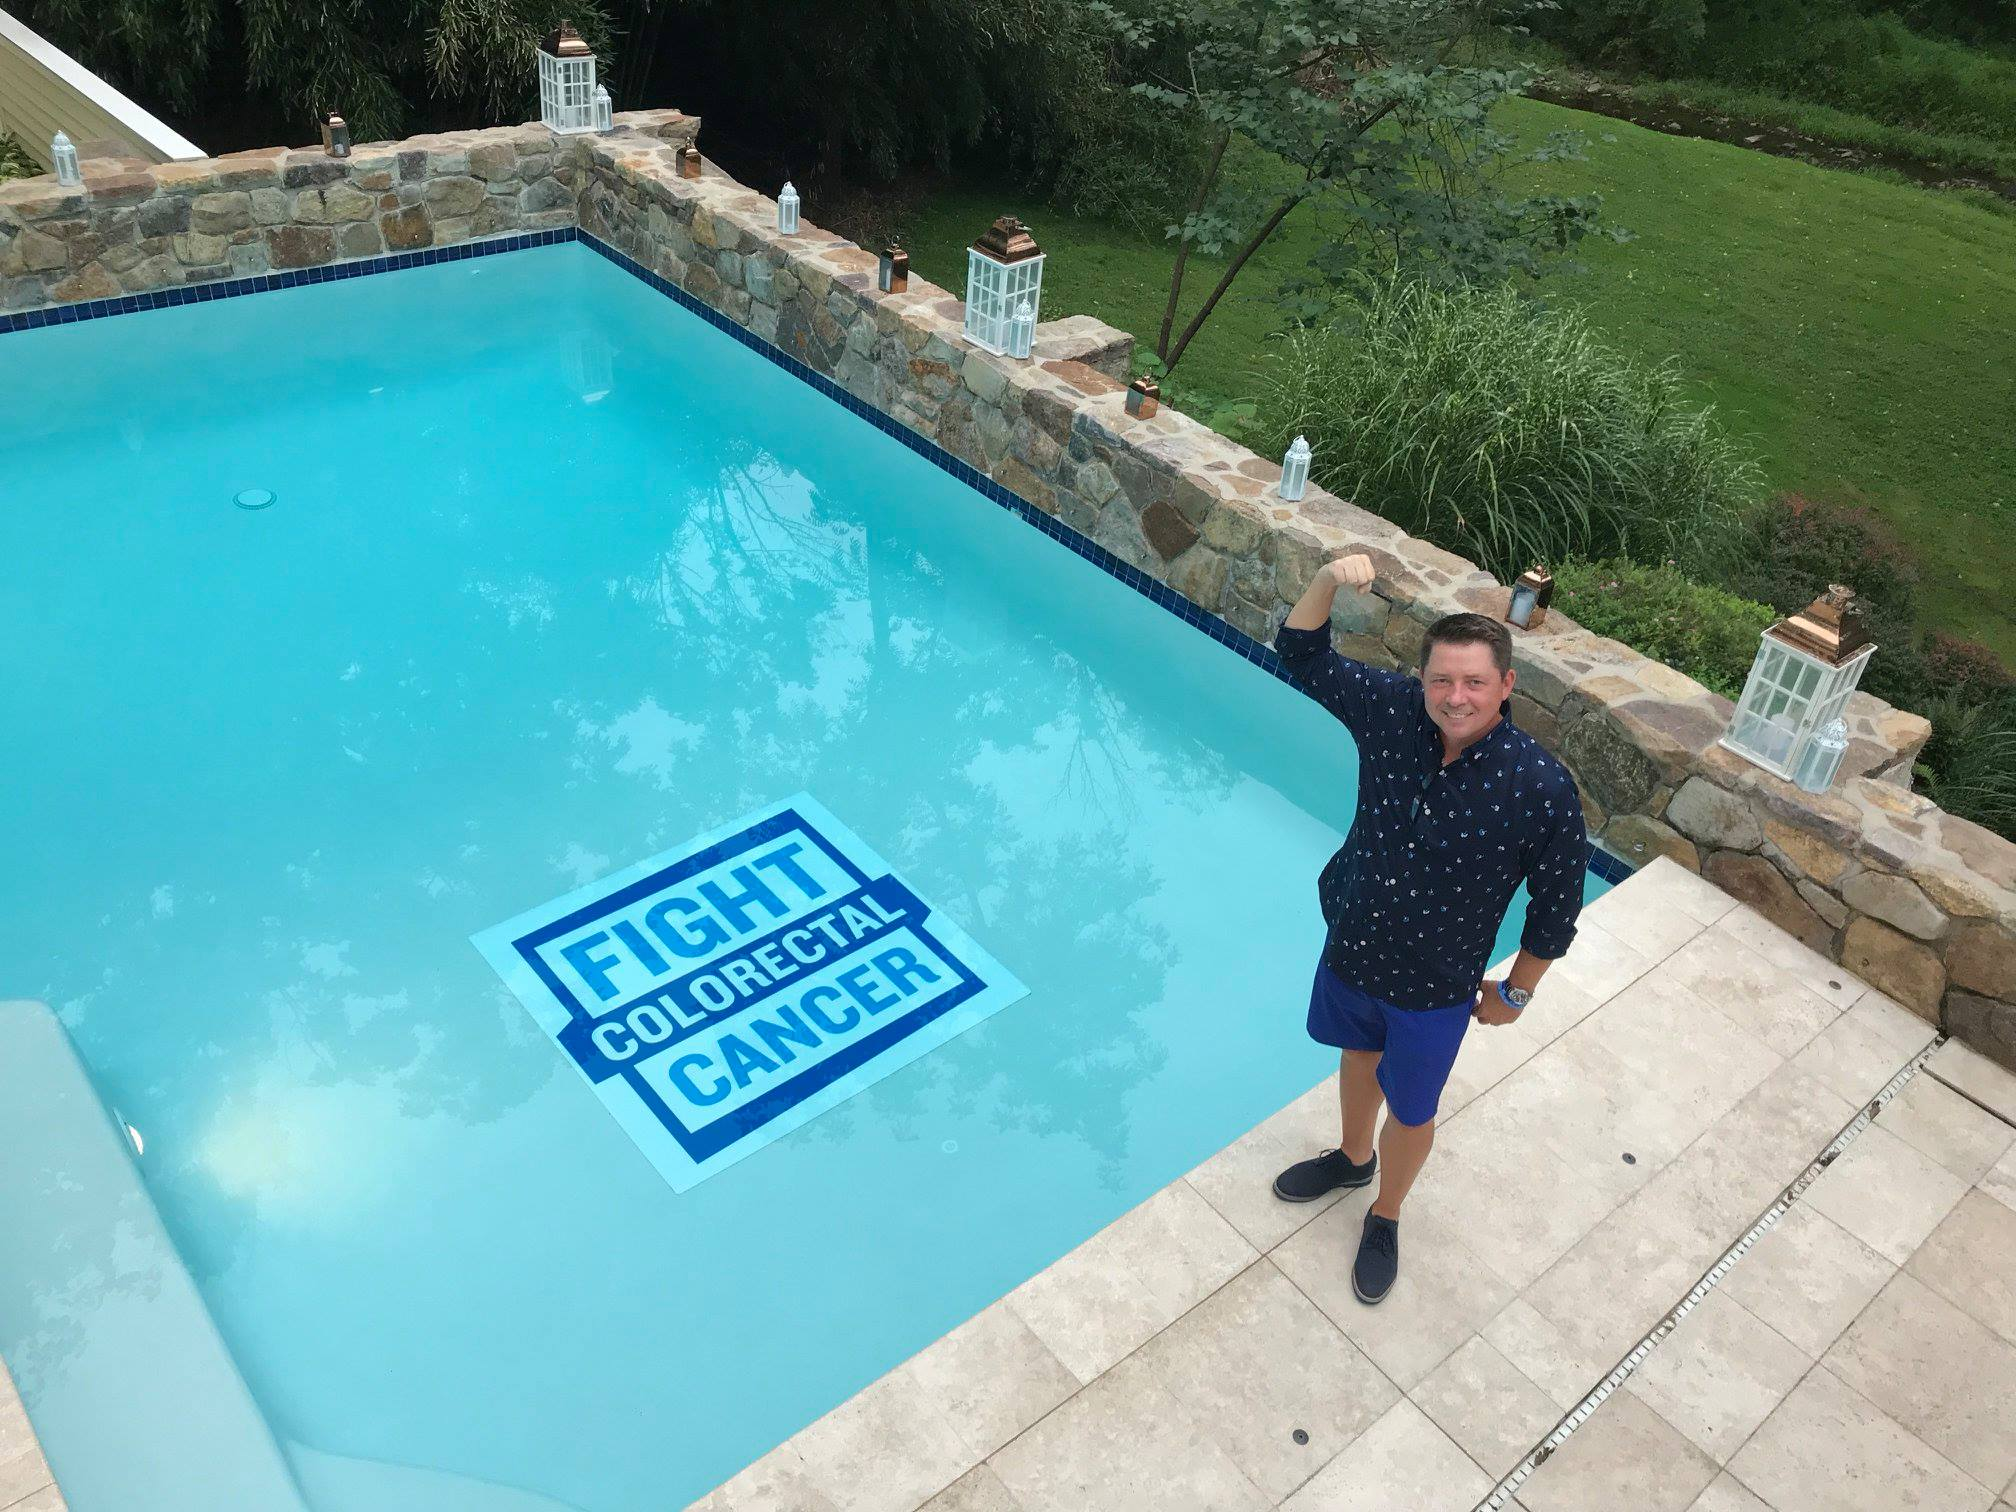 john-fightcrc-logo-bottom-of-pool